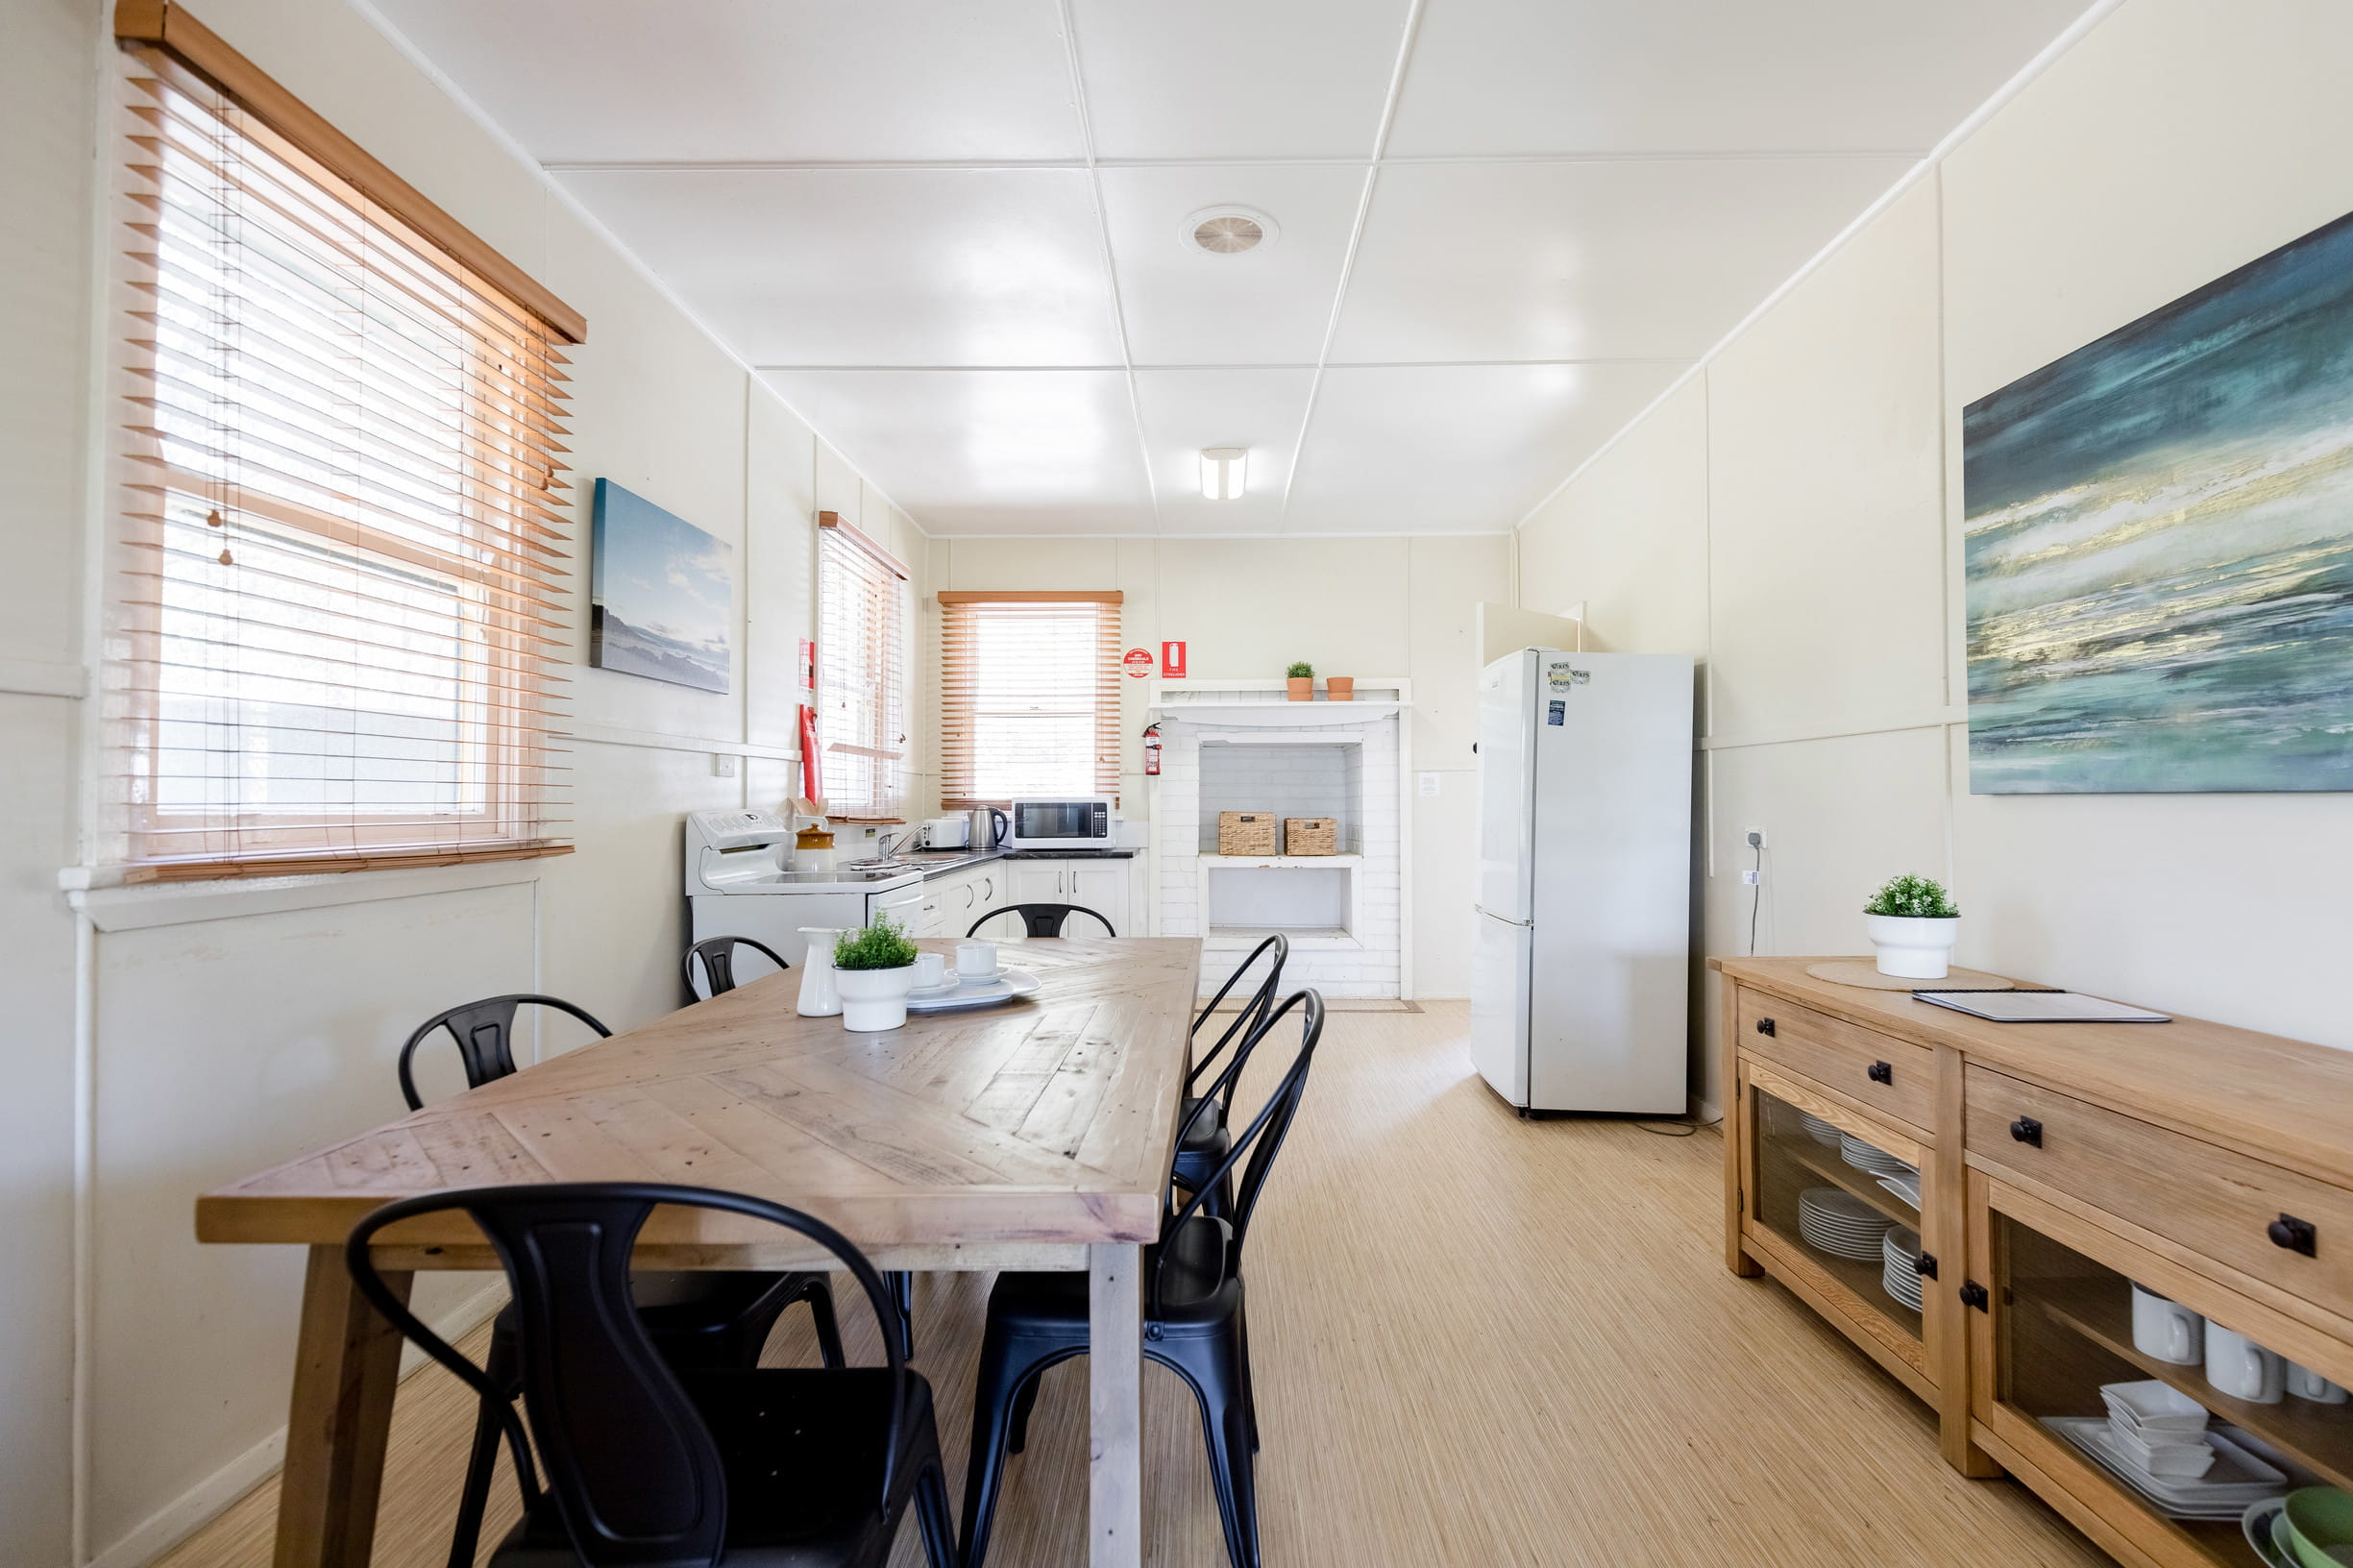 The kitchen and dining room at Tuckers Rocks Cottage in Bongil Bongil National Park. Photo: Mitchell Franzi/DPIE